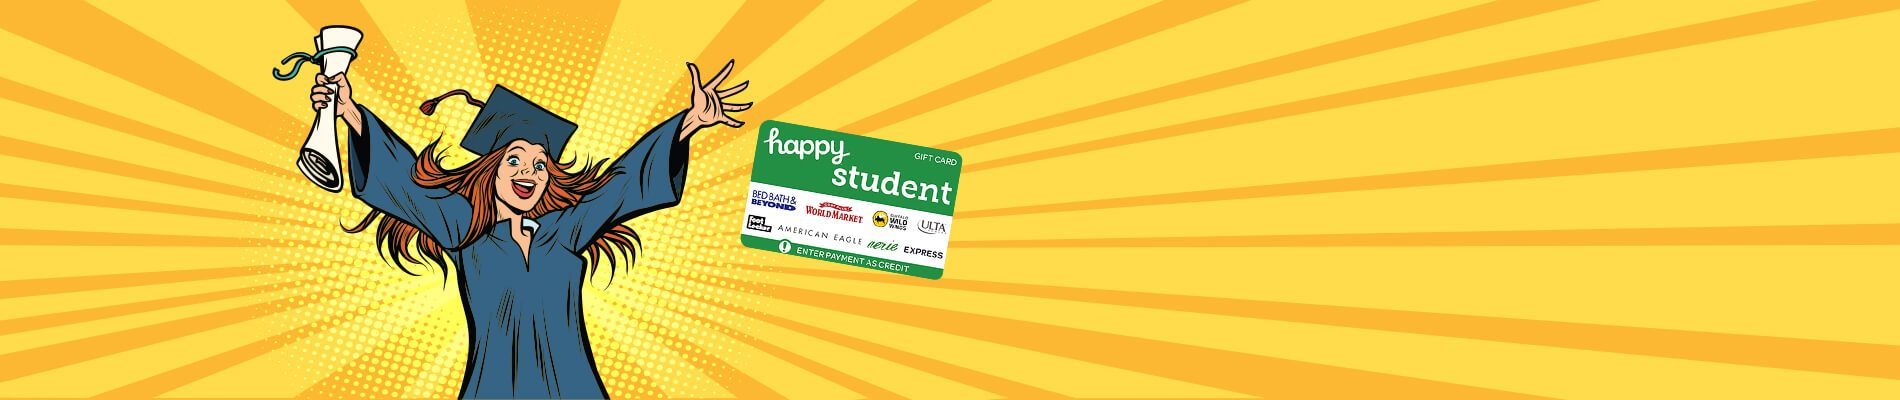 Happy Student Gift Card Sale